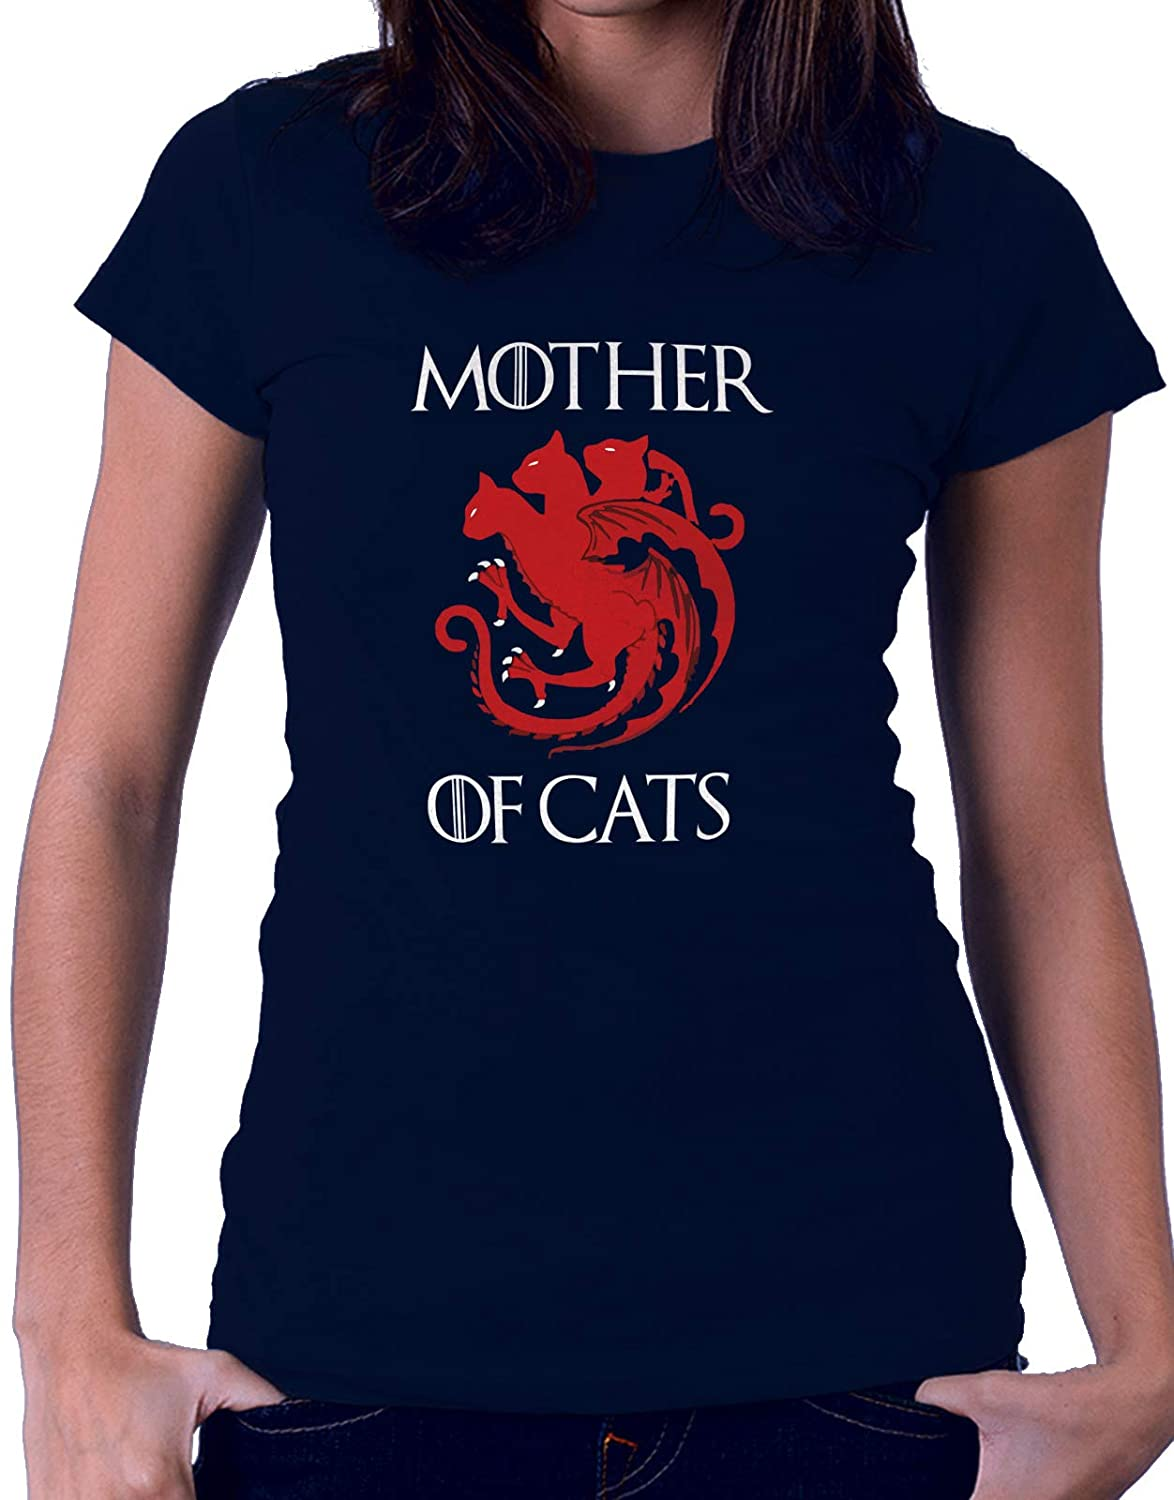 Il Trono di Spade Tshirt Game of Thrones Mother of Cats Serie TV